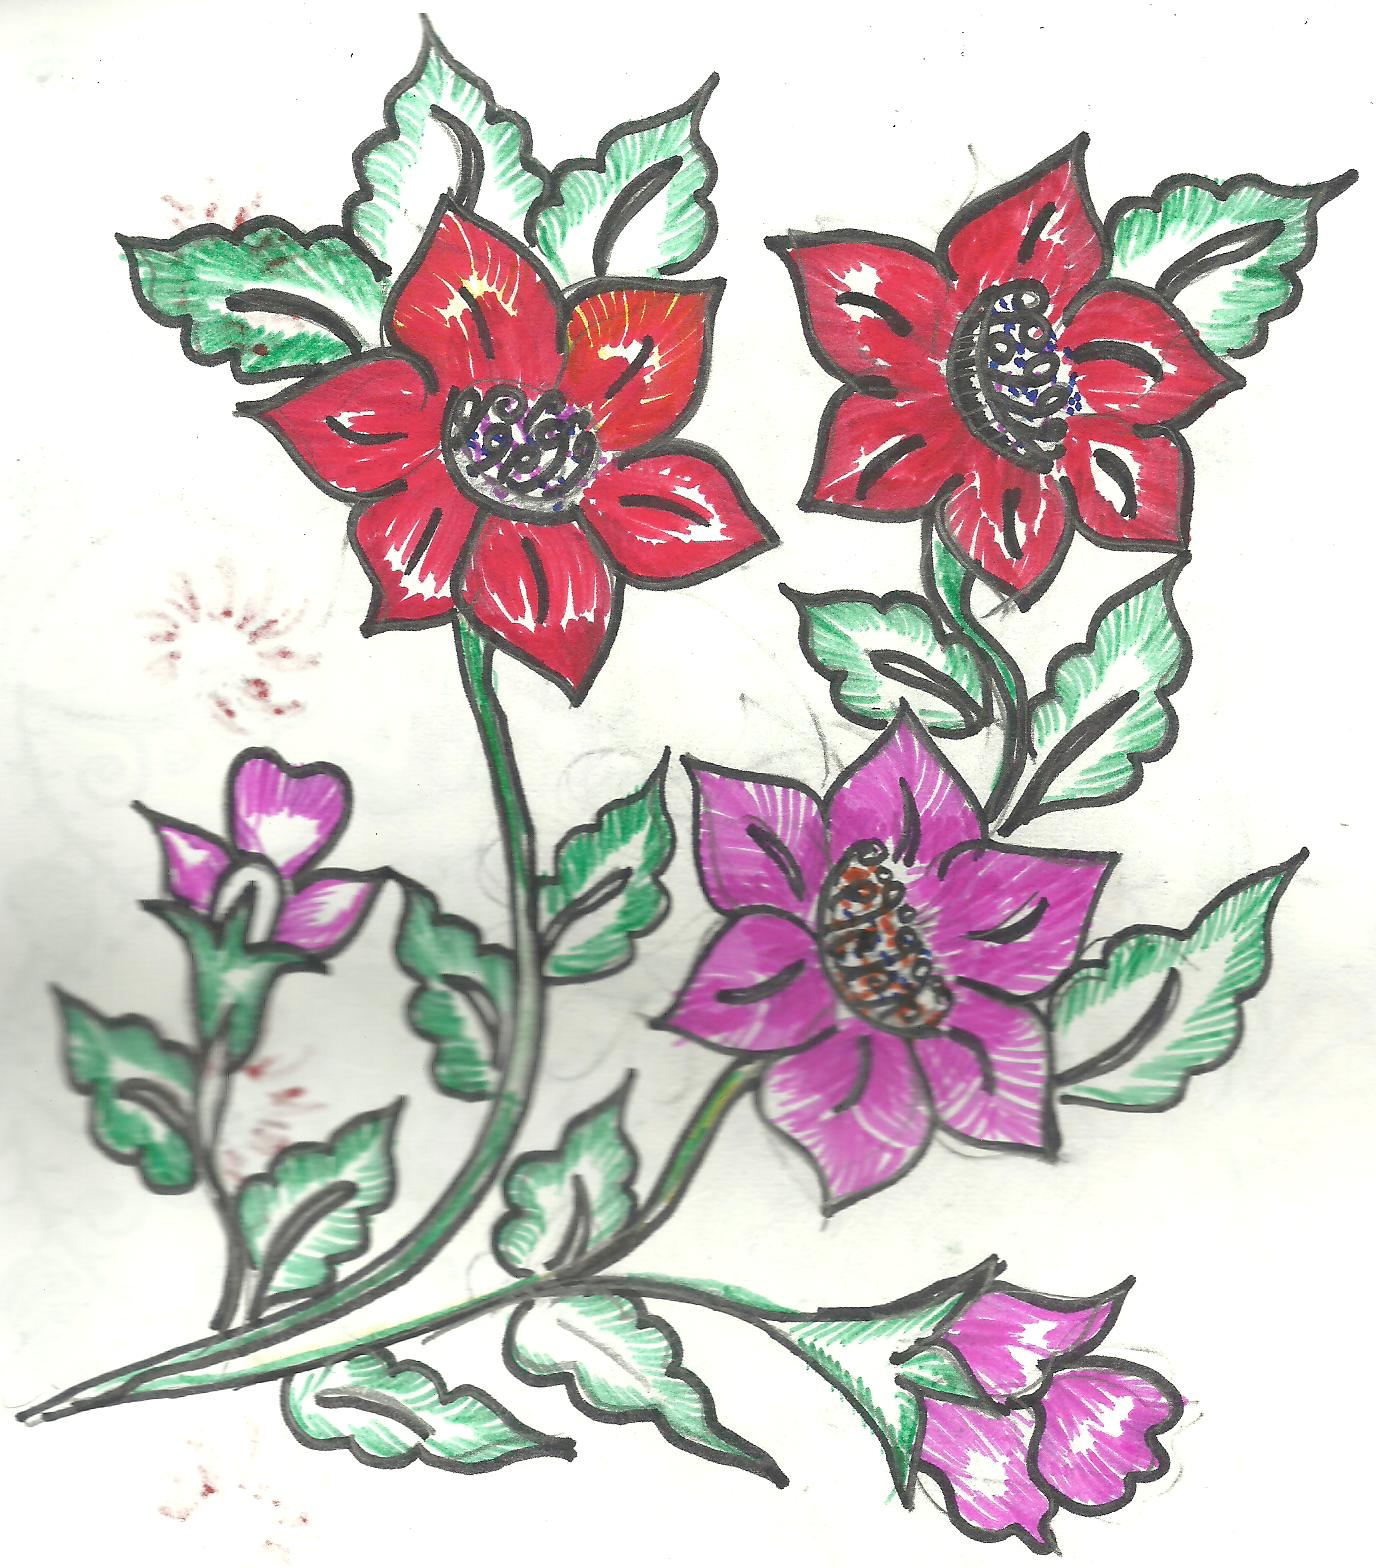 Bed sheets designs fabric painting - Design 04